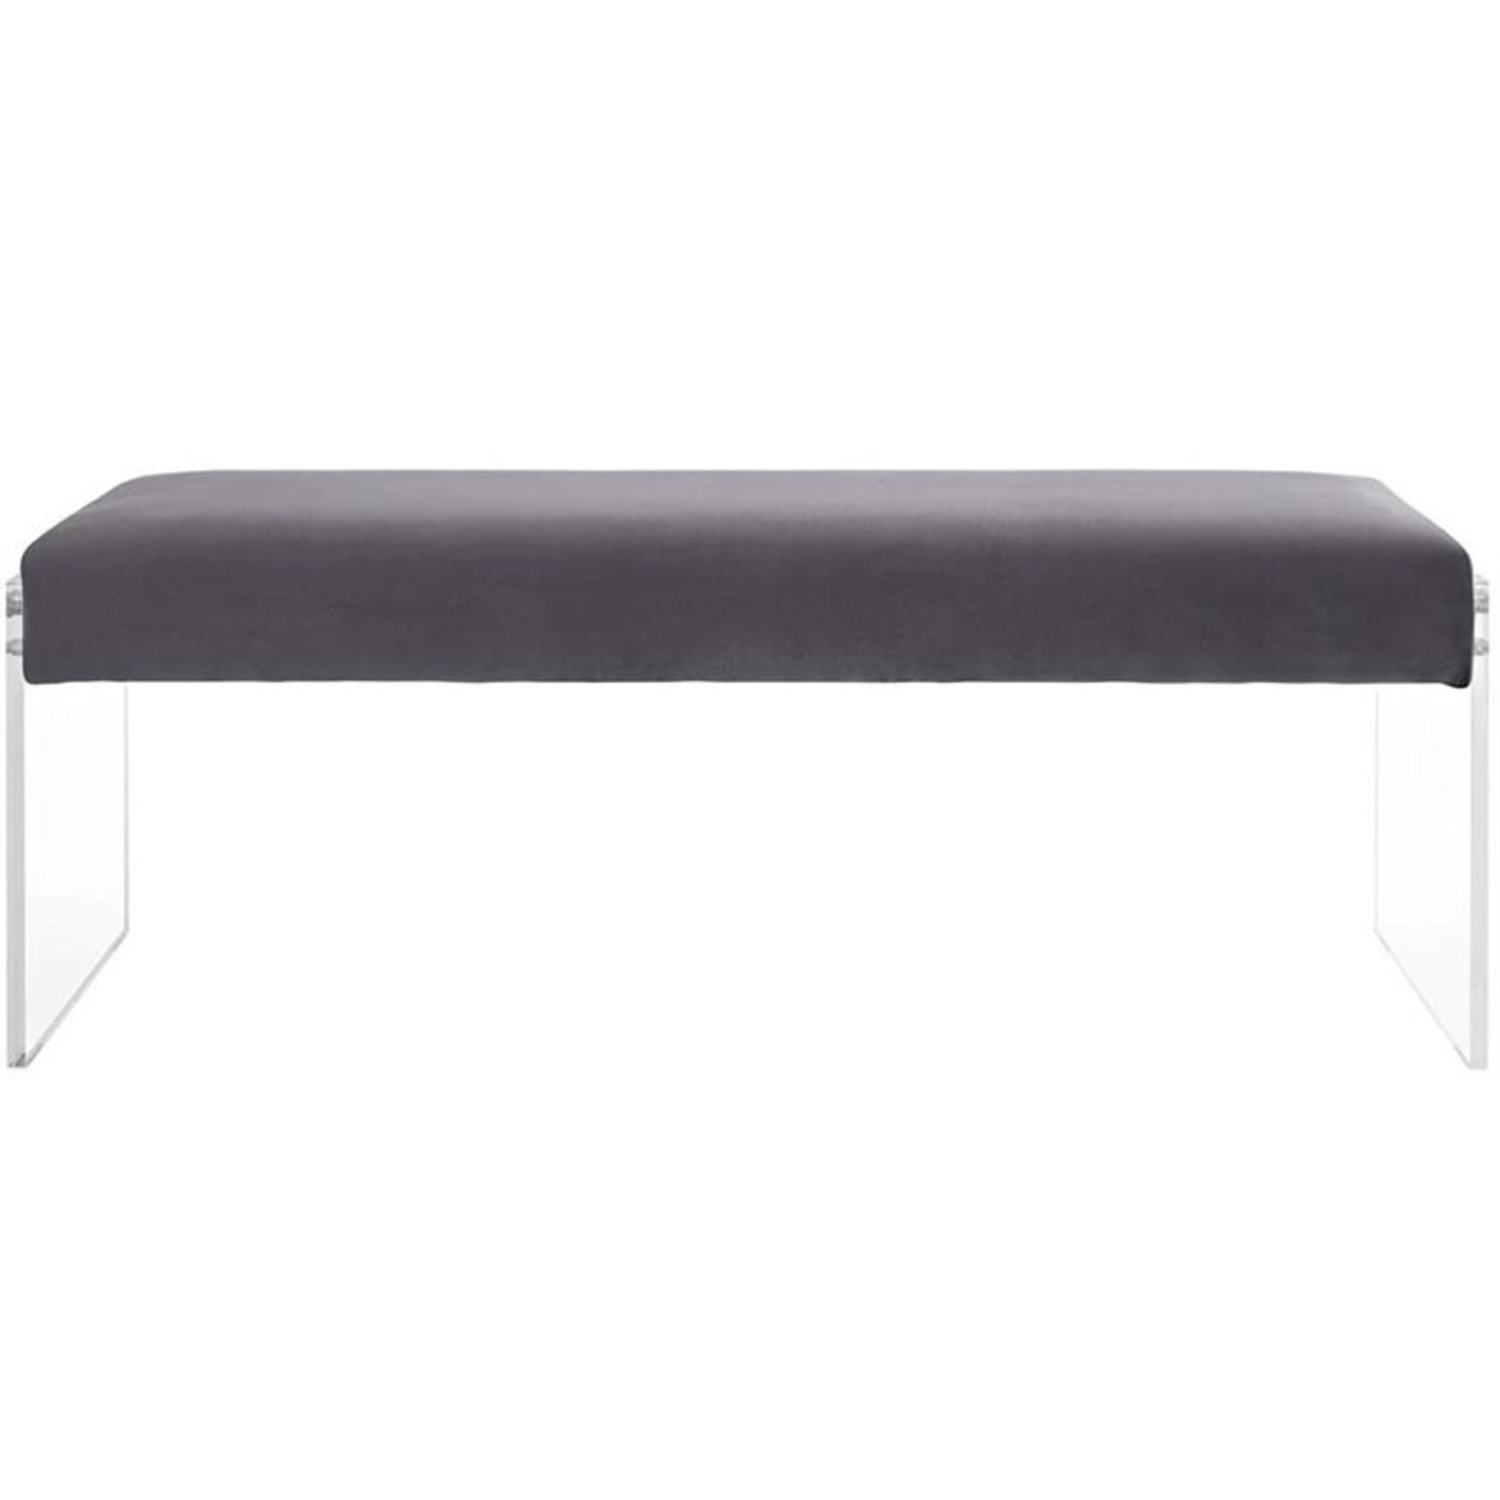 Bench In Gray Velvet Fabric & Clear Acrylic Finish - image-0